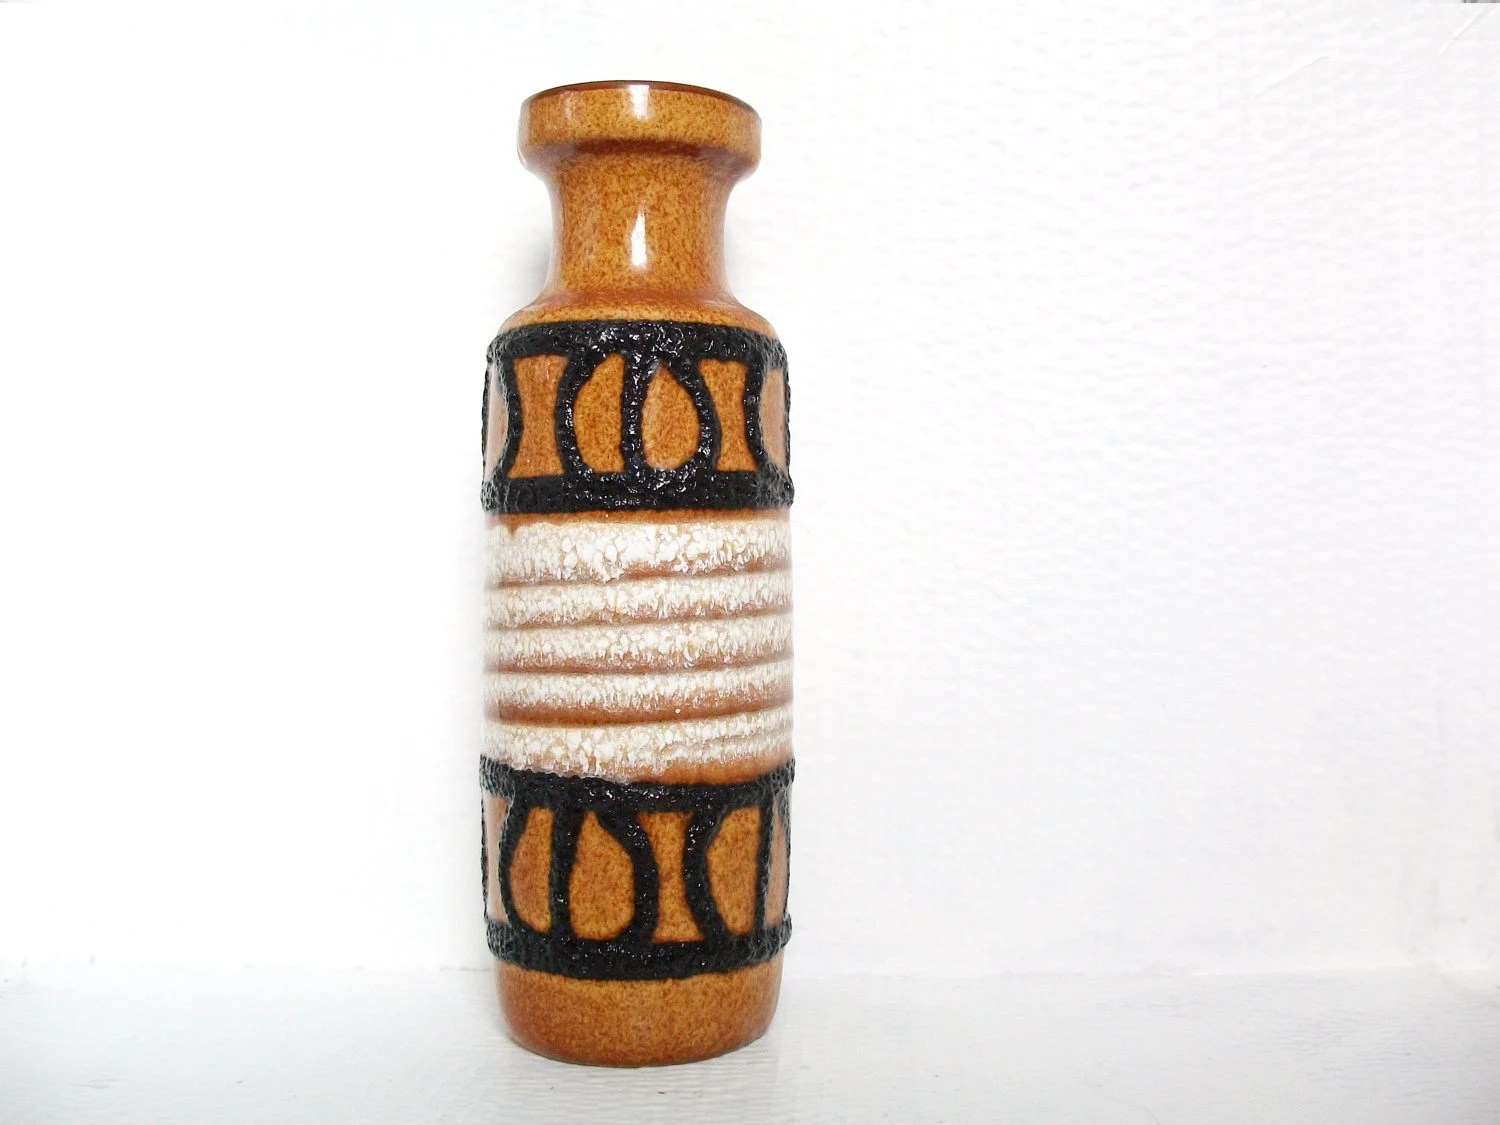 West German Pottery Vase Fat Lava Vintage Scheurich Keramik Retro Home Decor - Podooshki